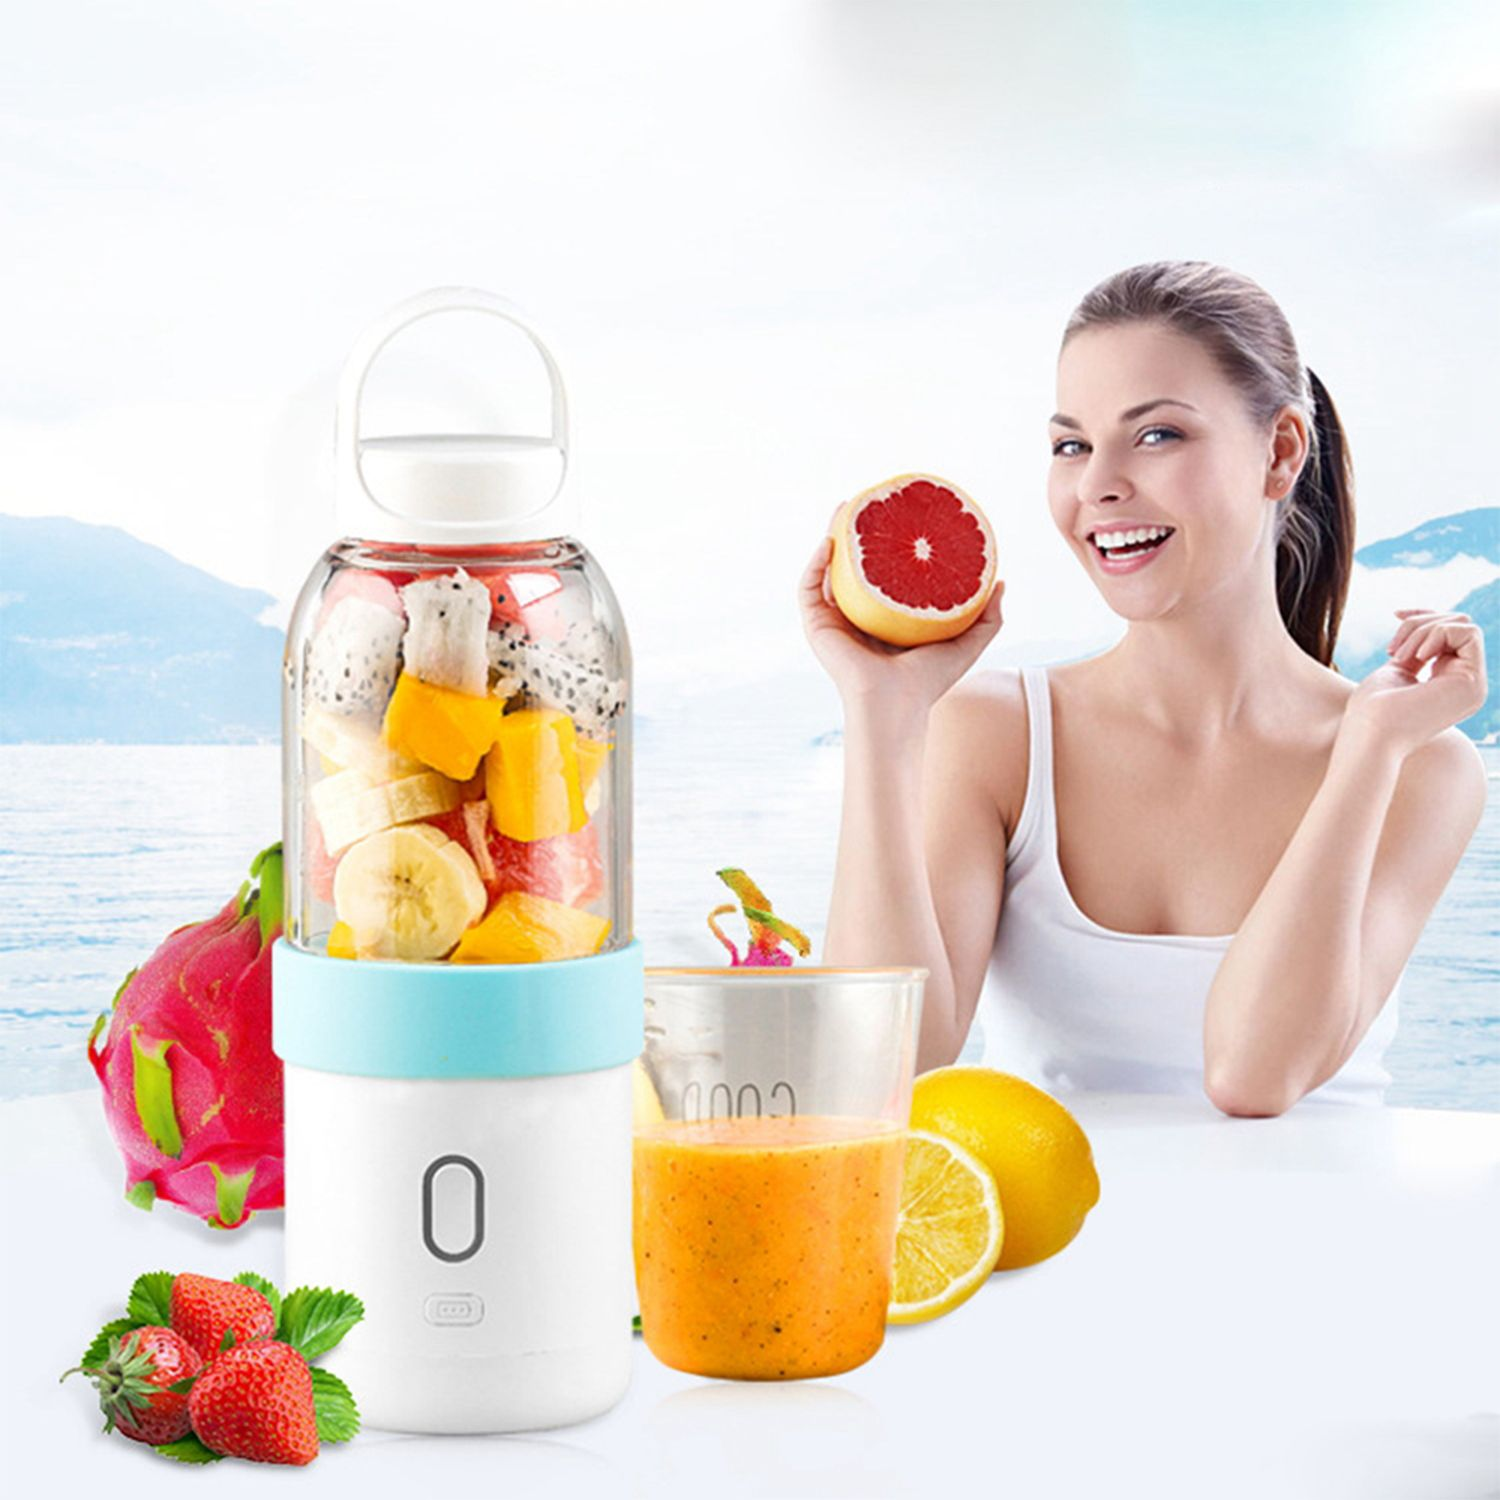 550ml Portable Blender USB Juicer Cup Fruit Vegetable Mixer Smoothie Milk Shake Hand Personal Small Juice